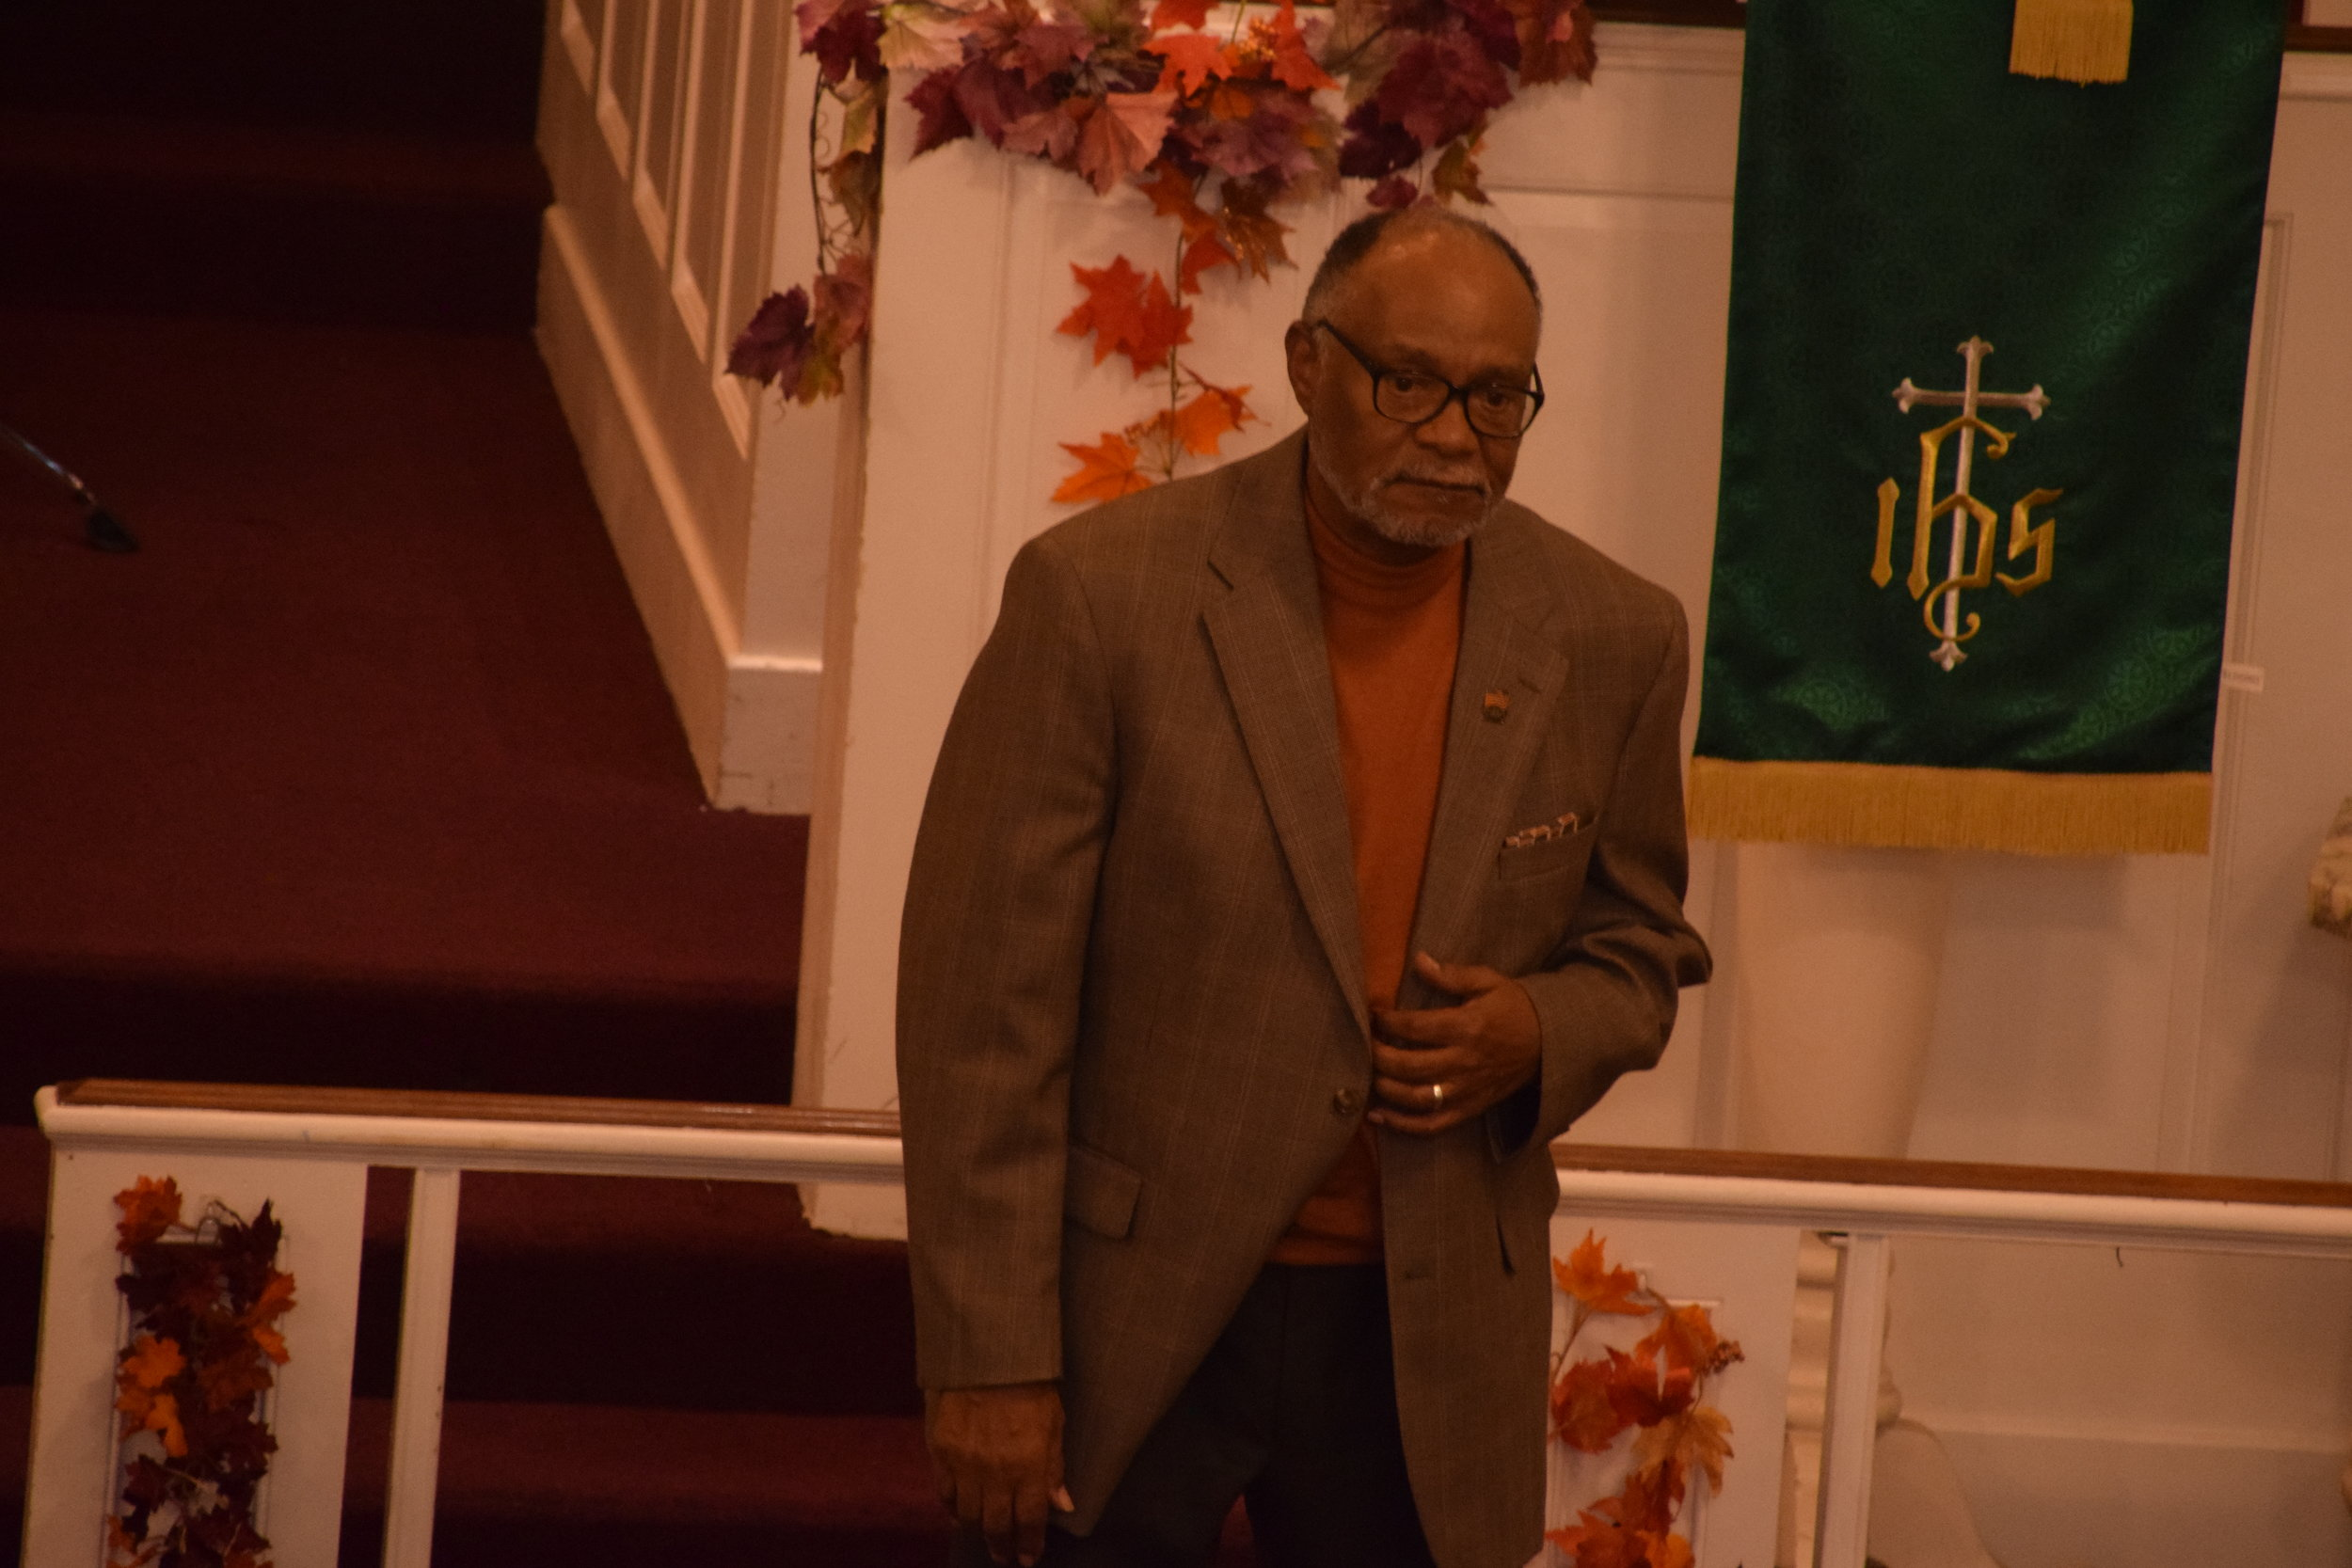 Fall Concert of T. Greene @ St. Paul Nov. 18, 2018 (150).JPG